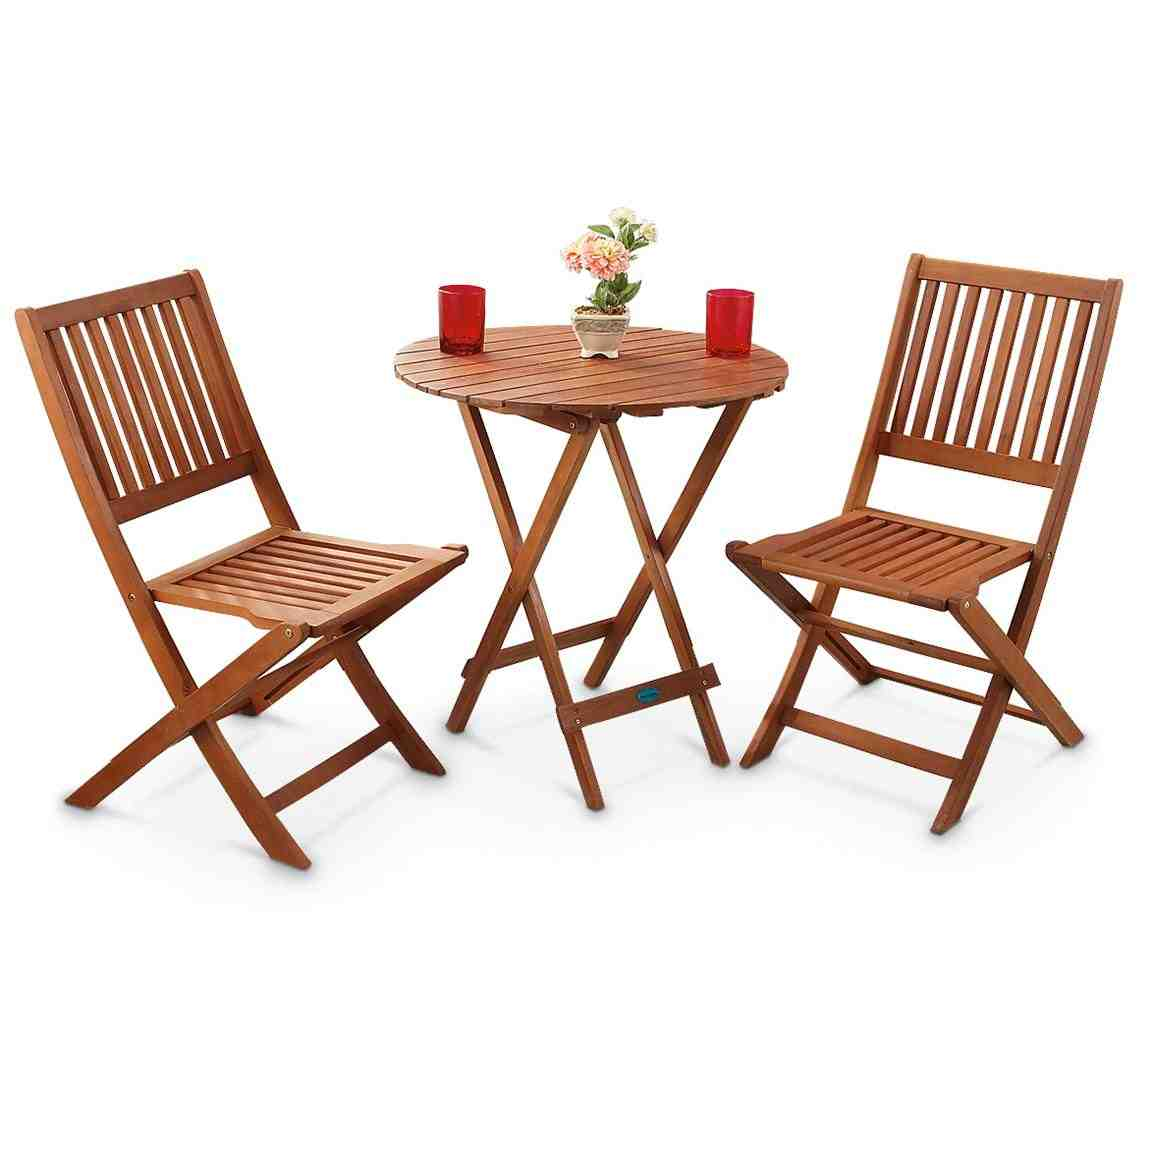 Outdoor folding table and chairs home furniture design for Garden furniture table and chairs